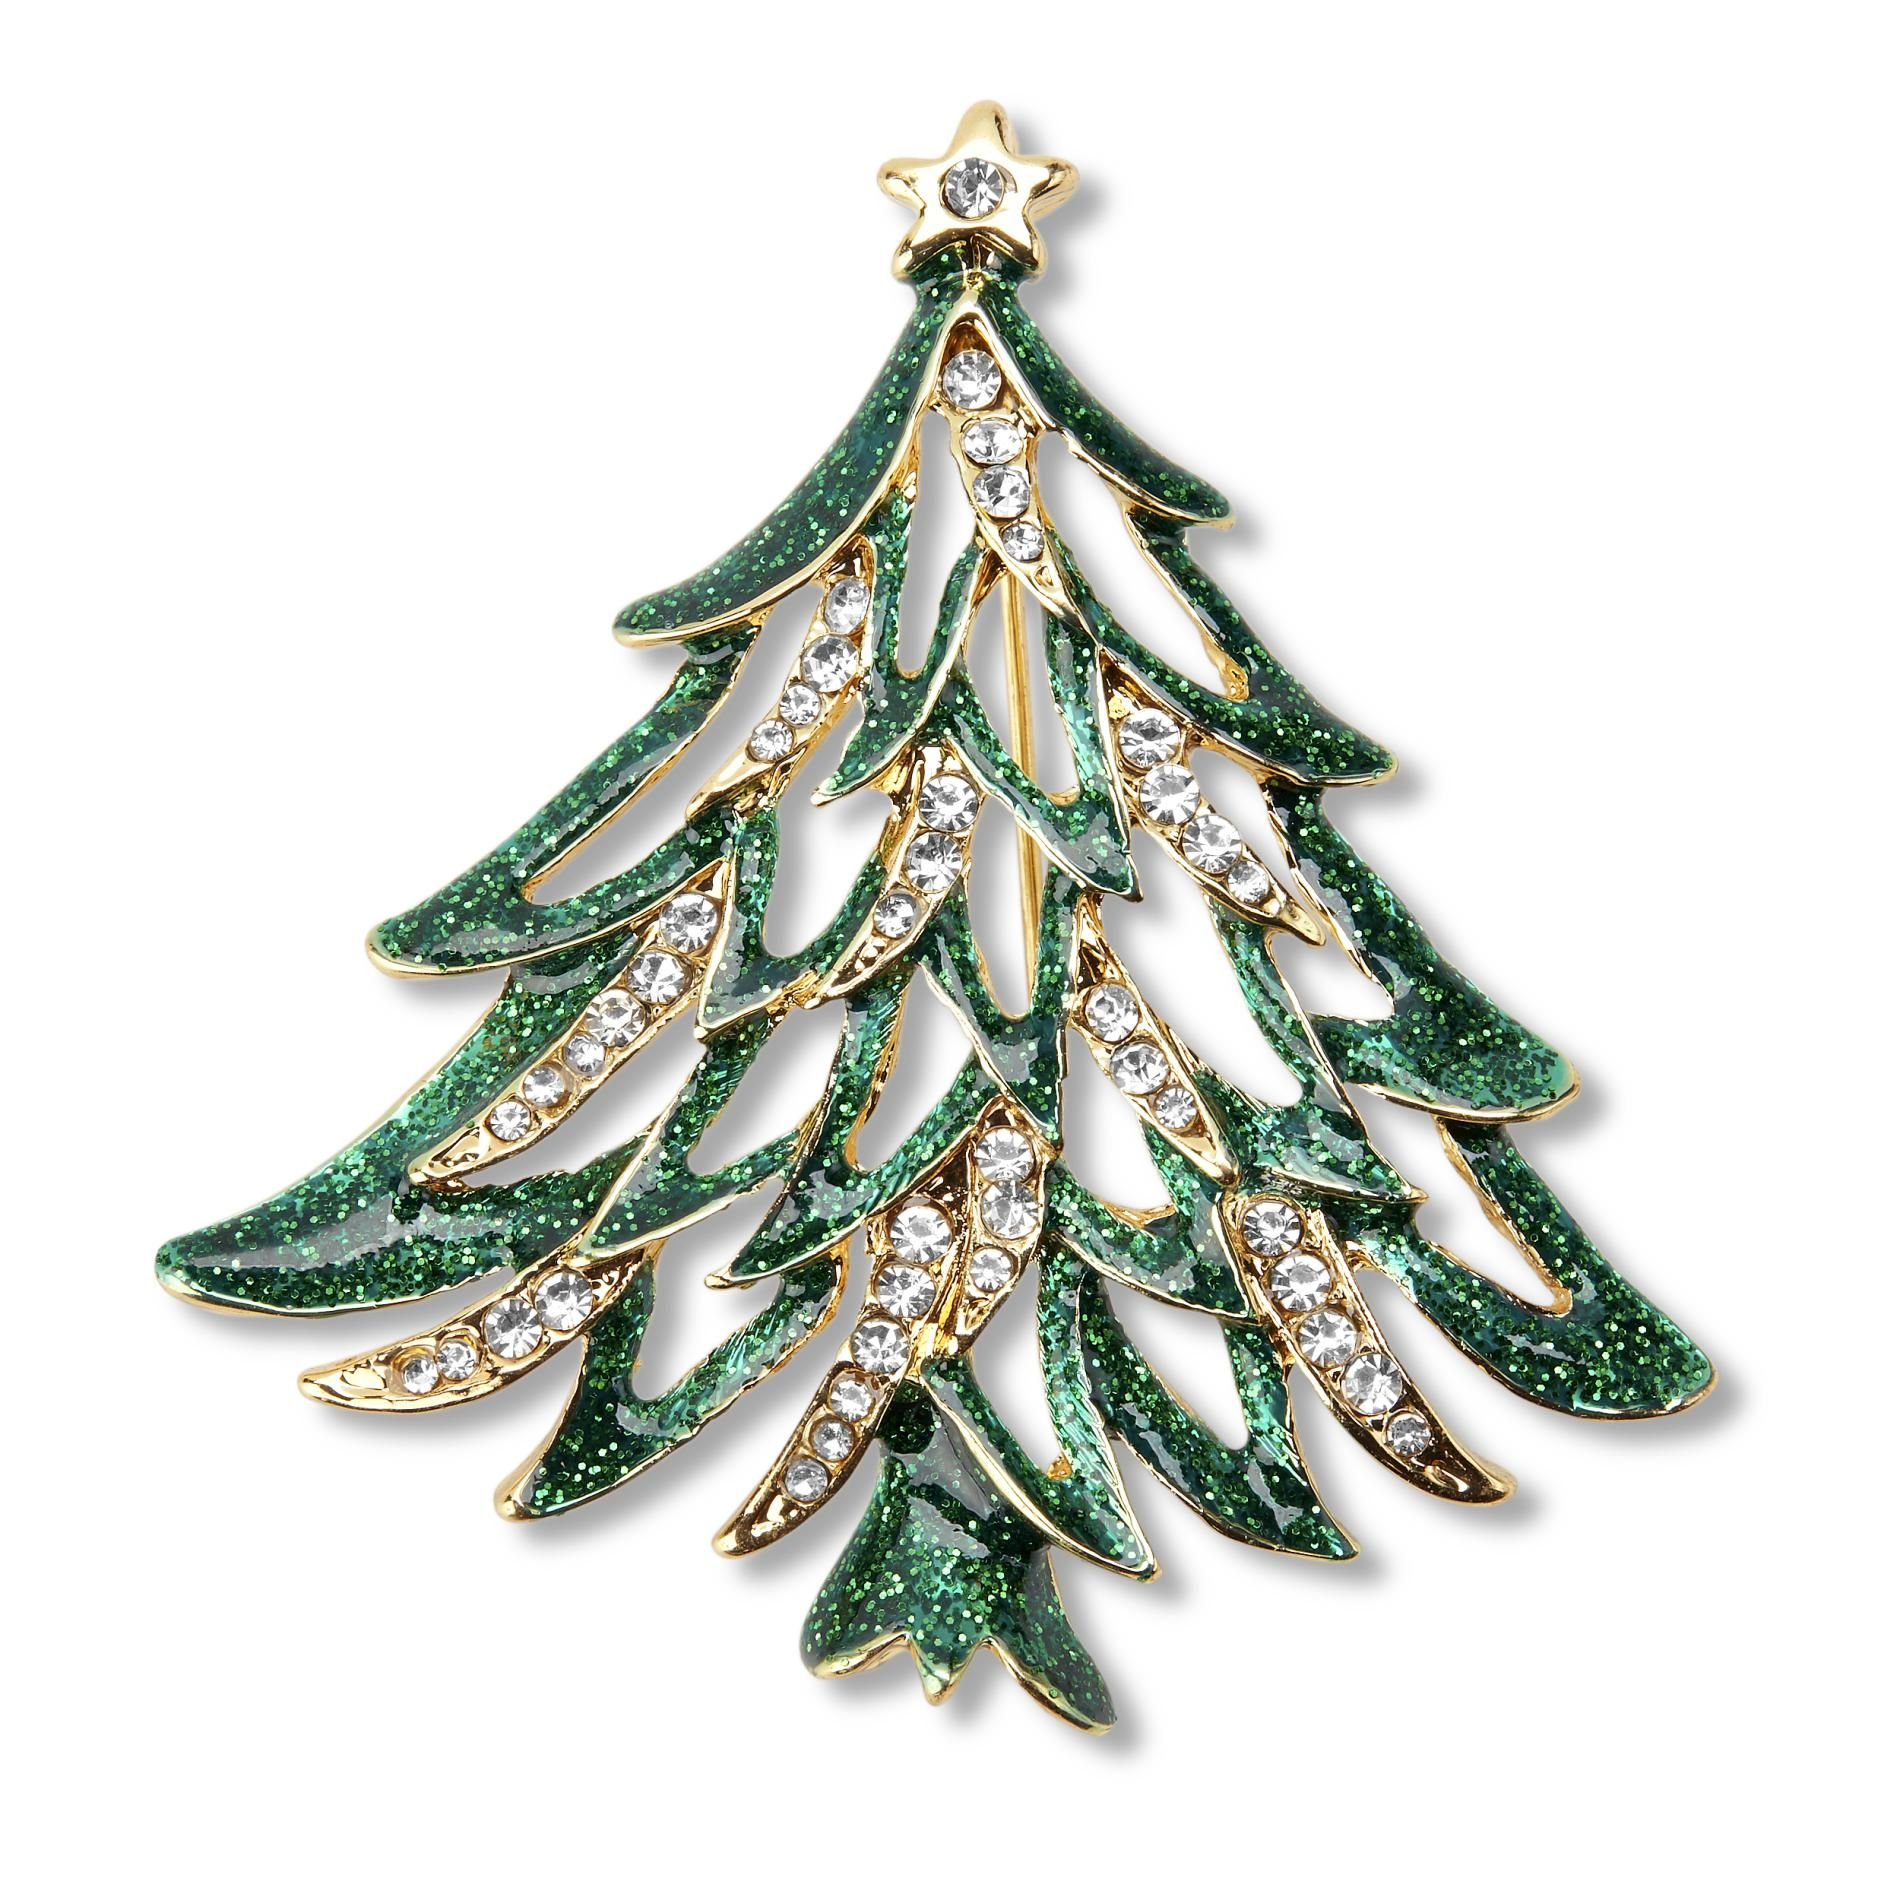 Holiday Editions Women S Christmas Tree Pin Brooch Green Glitter Enamel Open Boughs Tiny Rhinest Jewelry Christmas Tree Jeweled Christmas Christmas Jewelry